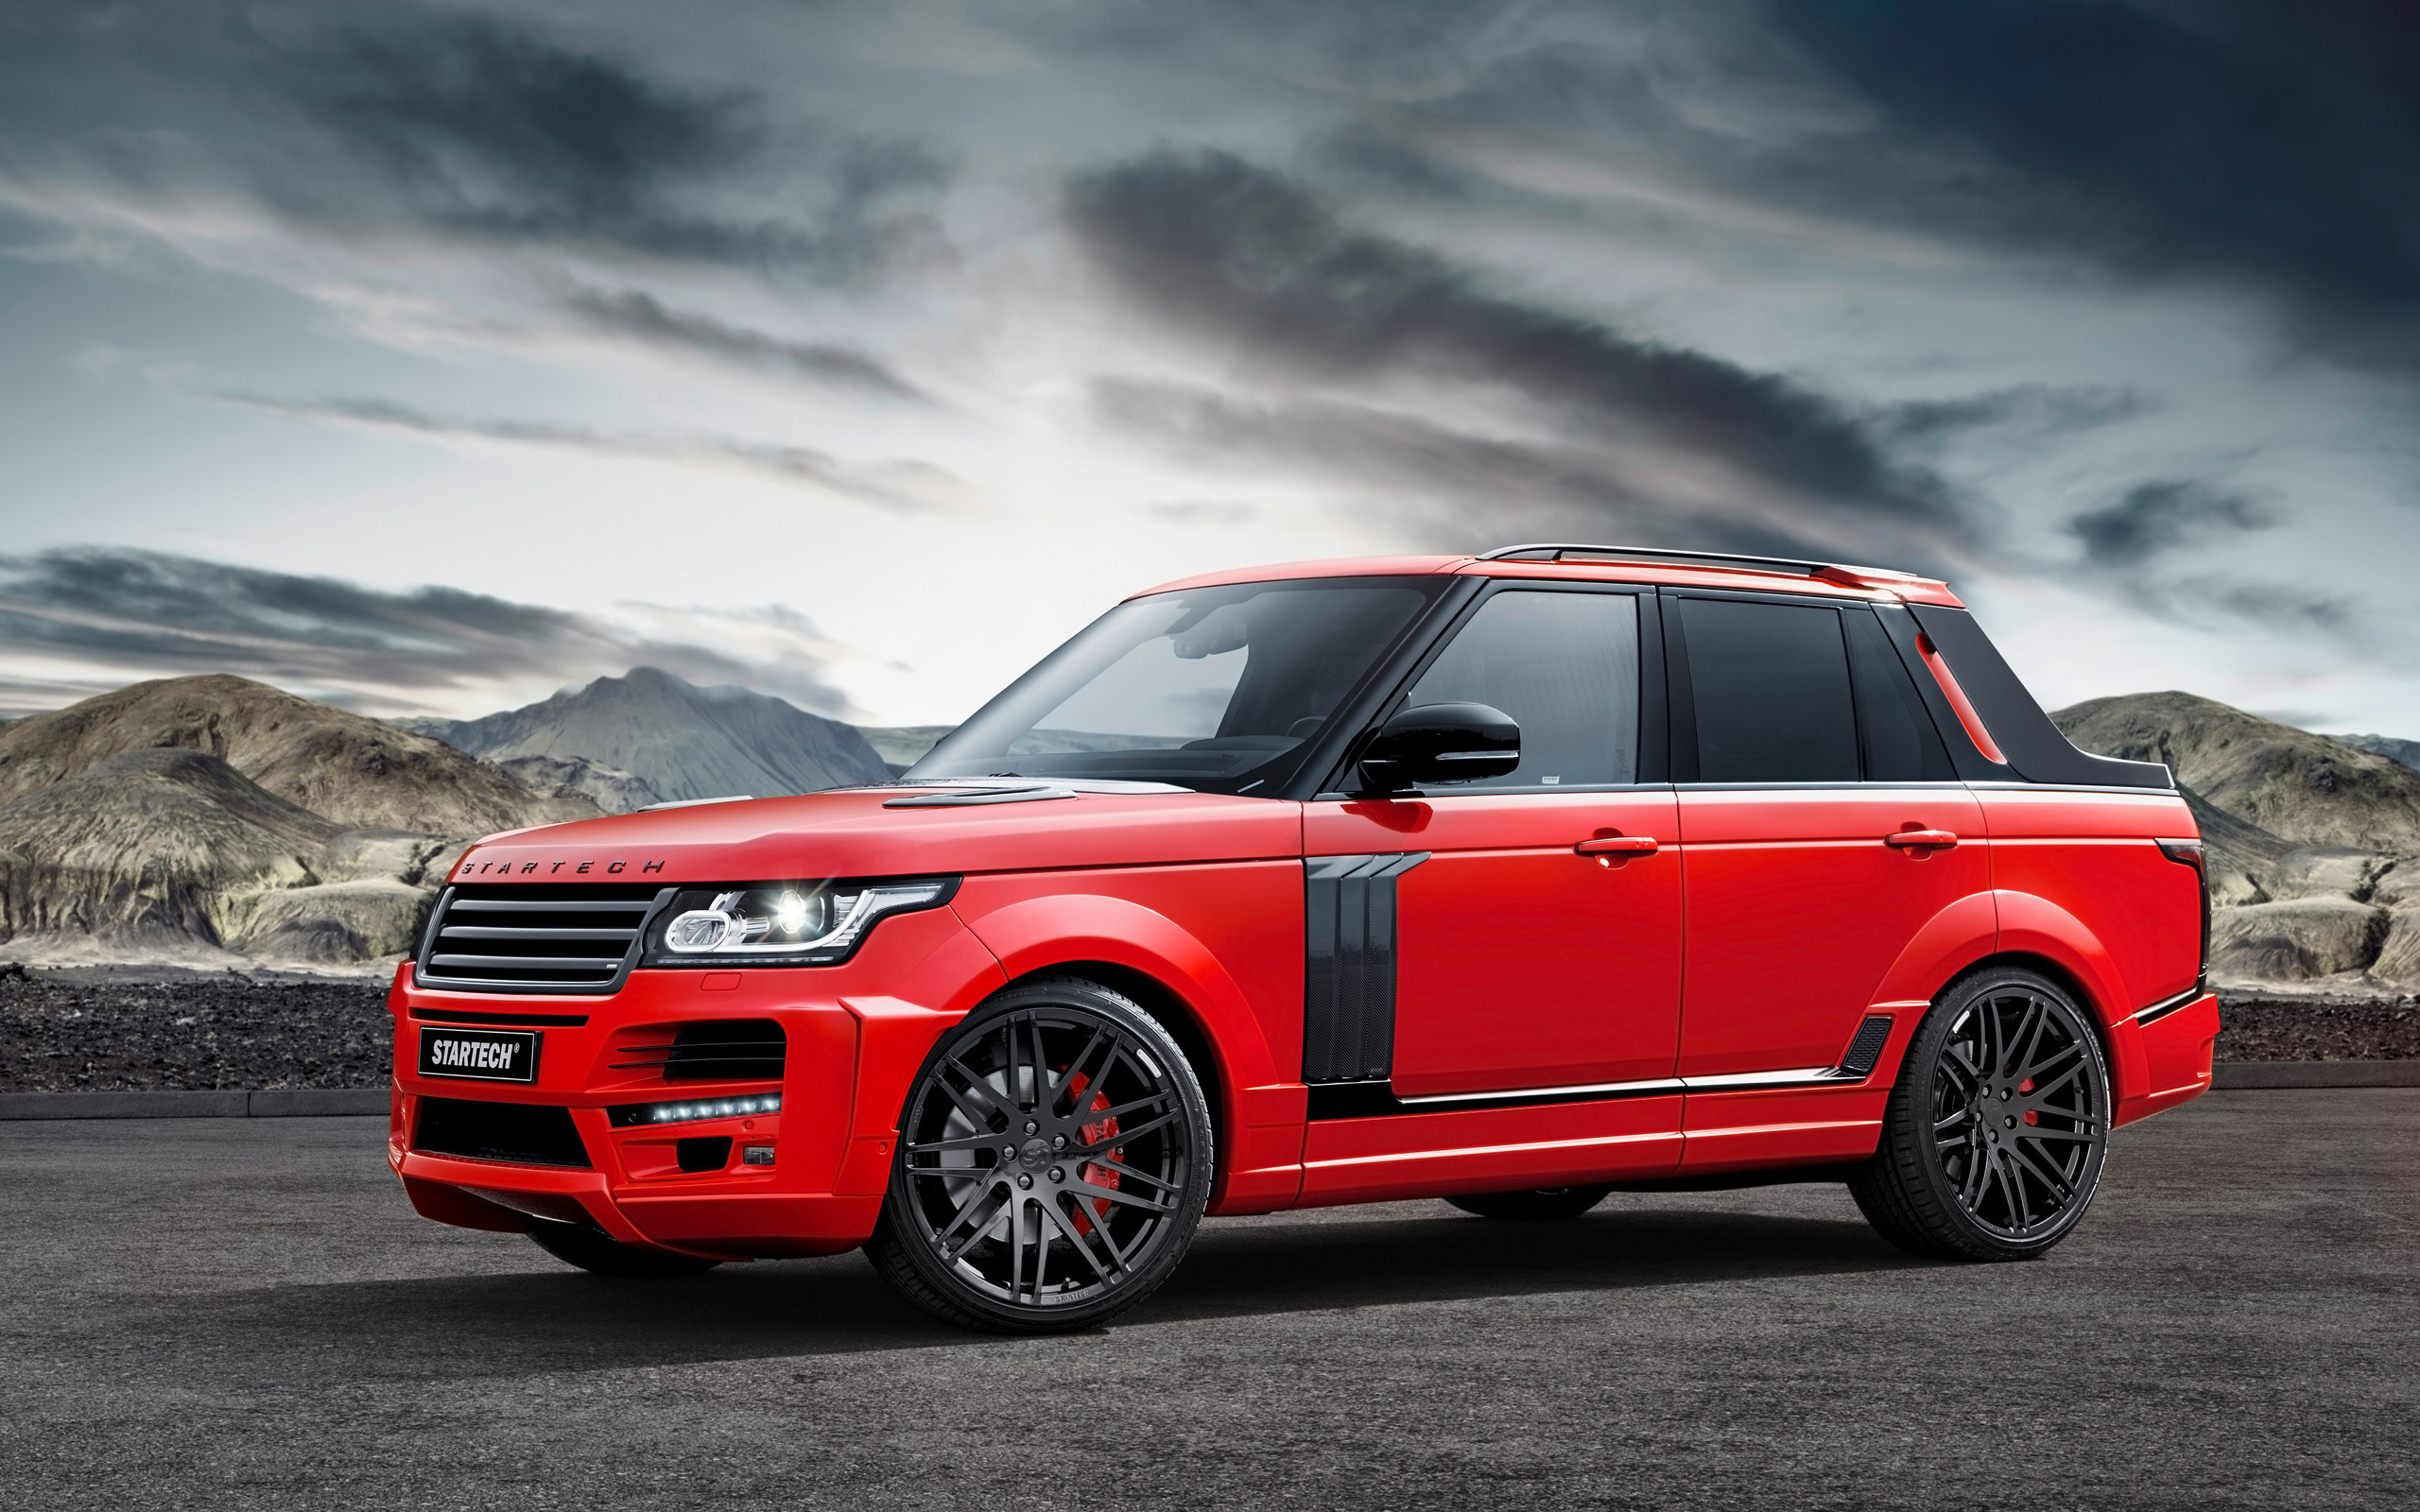 Is Cadillac A Foreign Car >> 2015 Startech Range Rover Pickup Wallpaper | HD Car Wallpapers | ID #5286